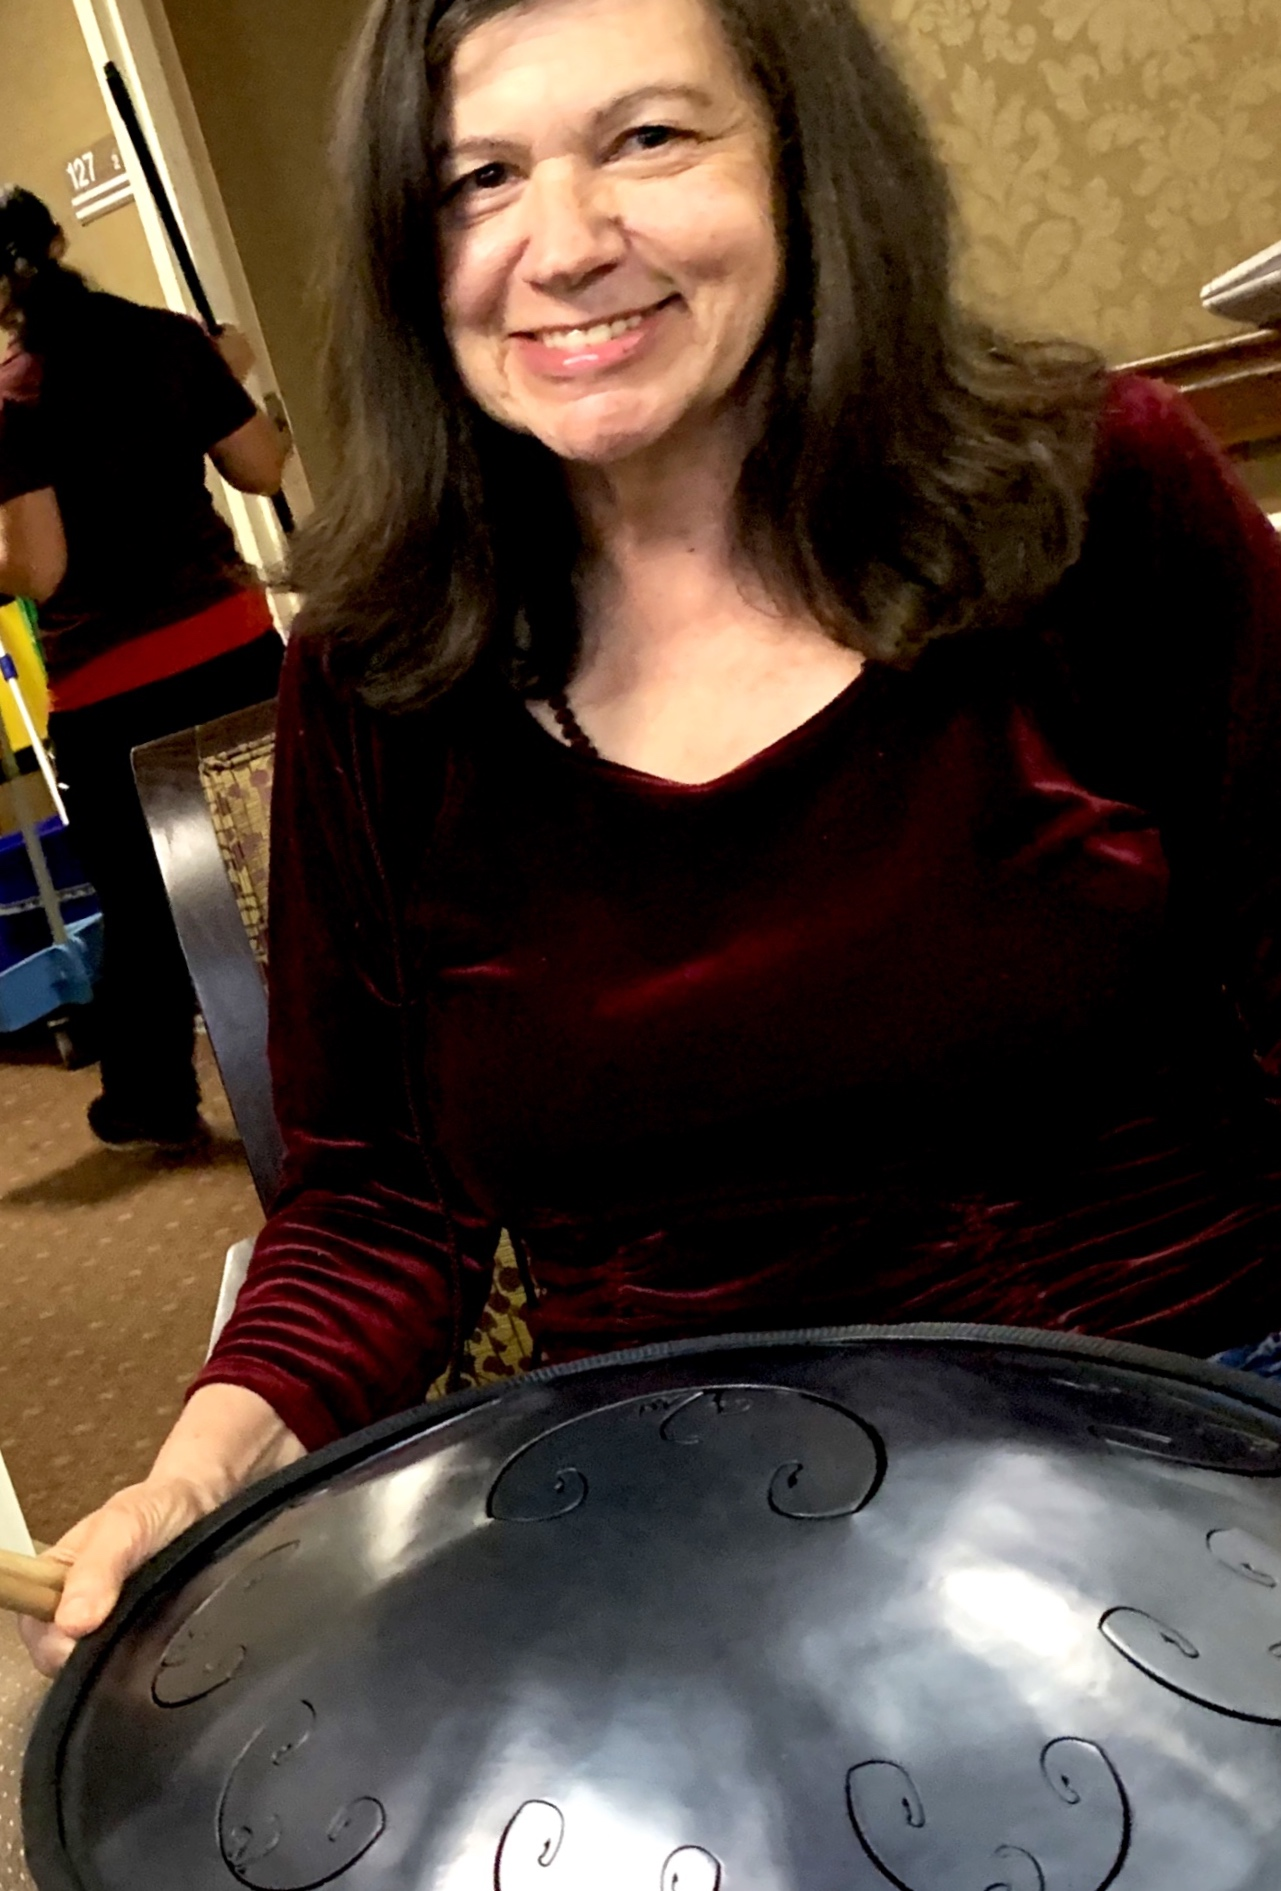 Bringing the RAV drum with me, playing for a group gathered round the nurse's station